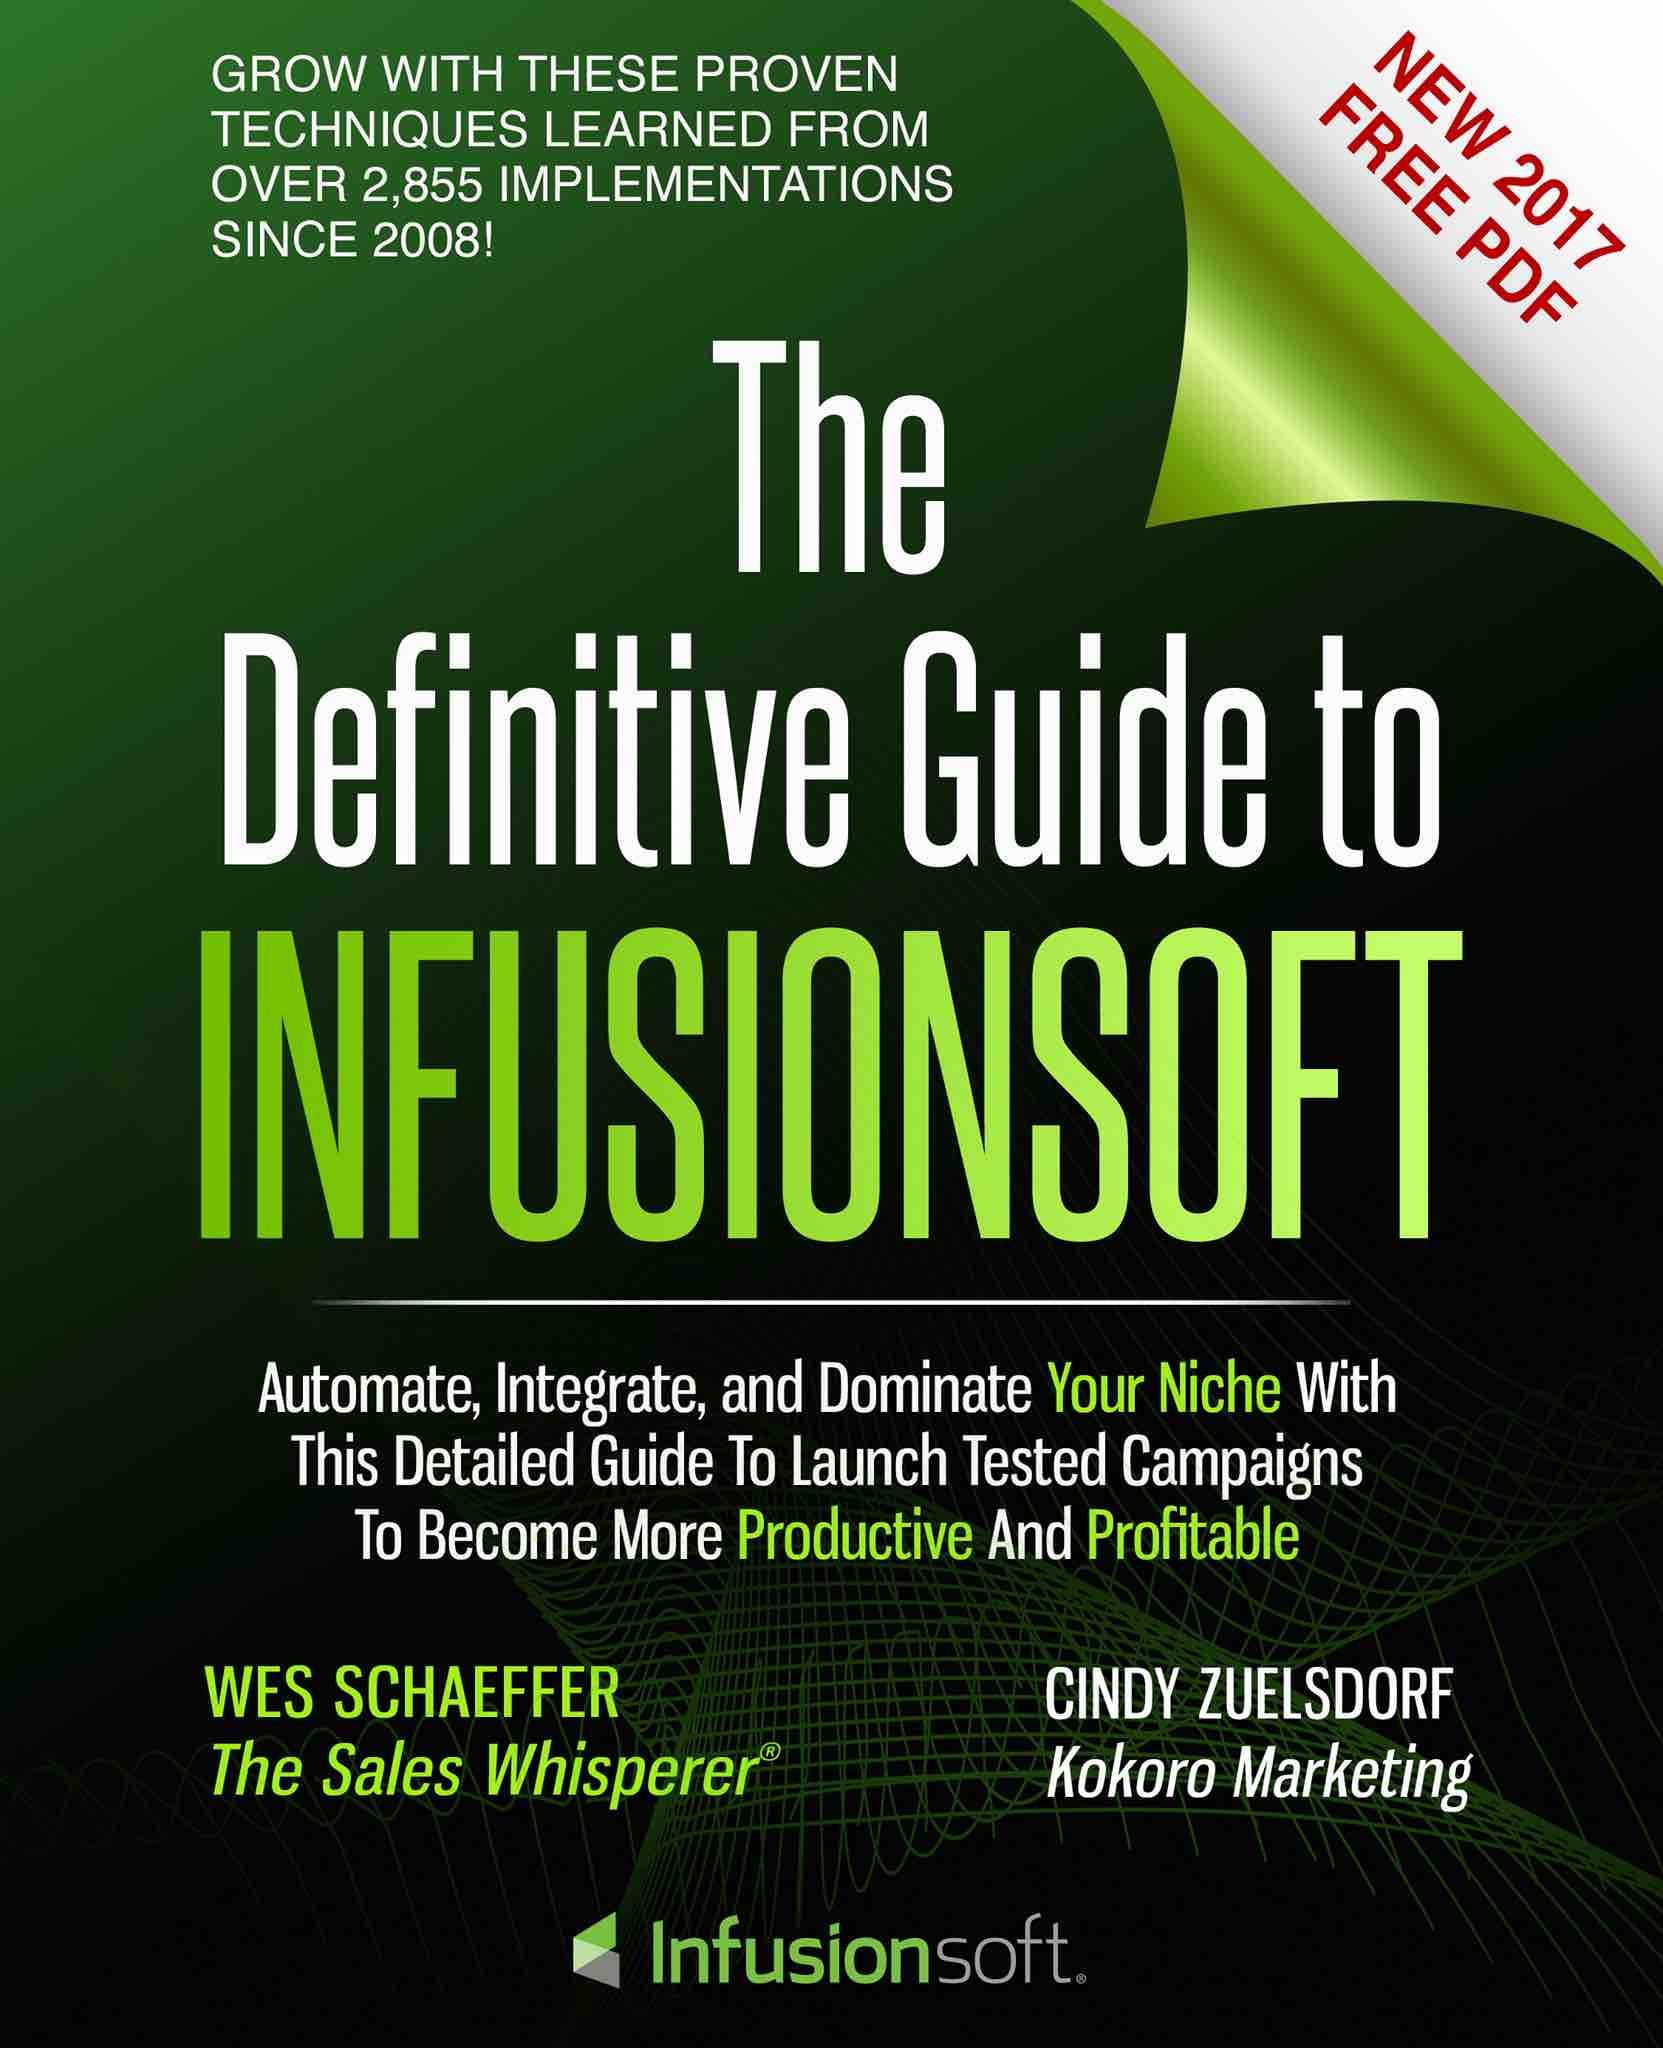 Infusionsoft Book Front 2017.jpg